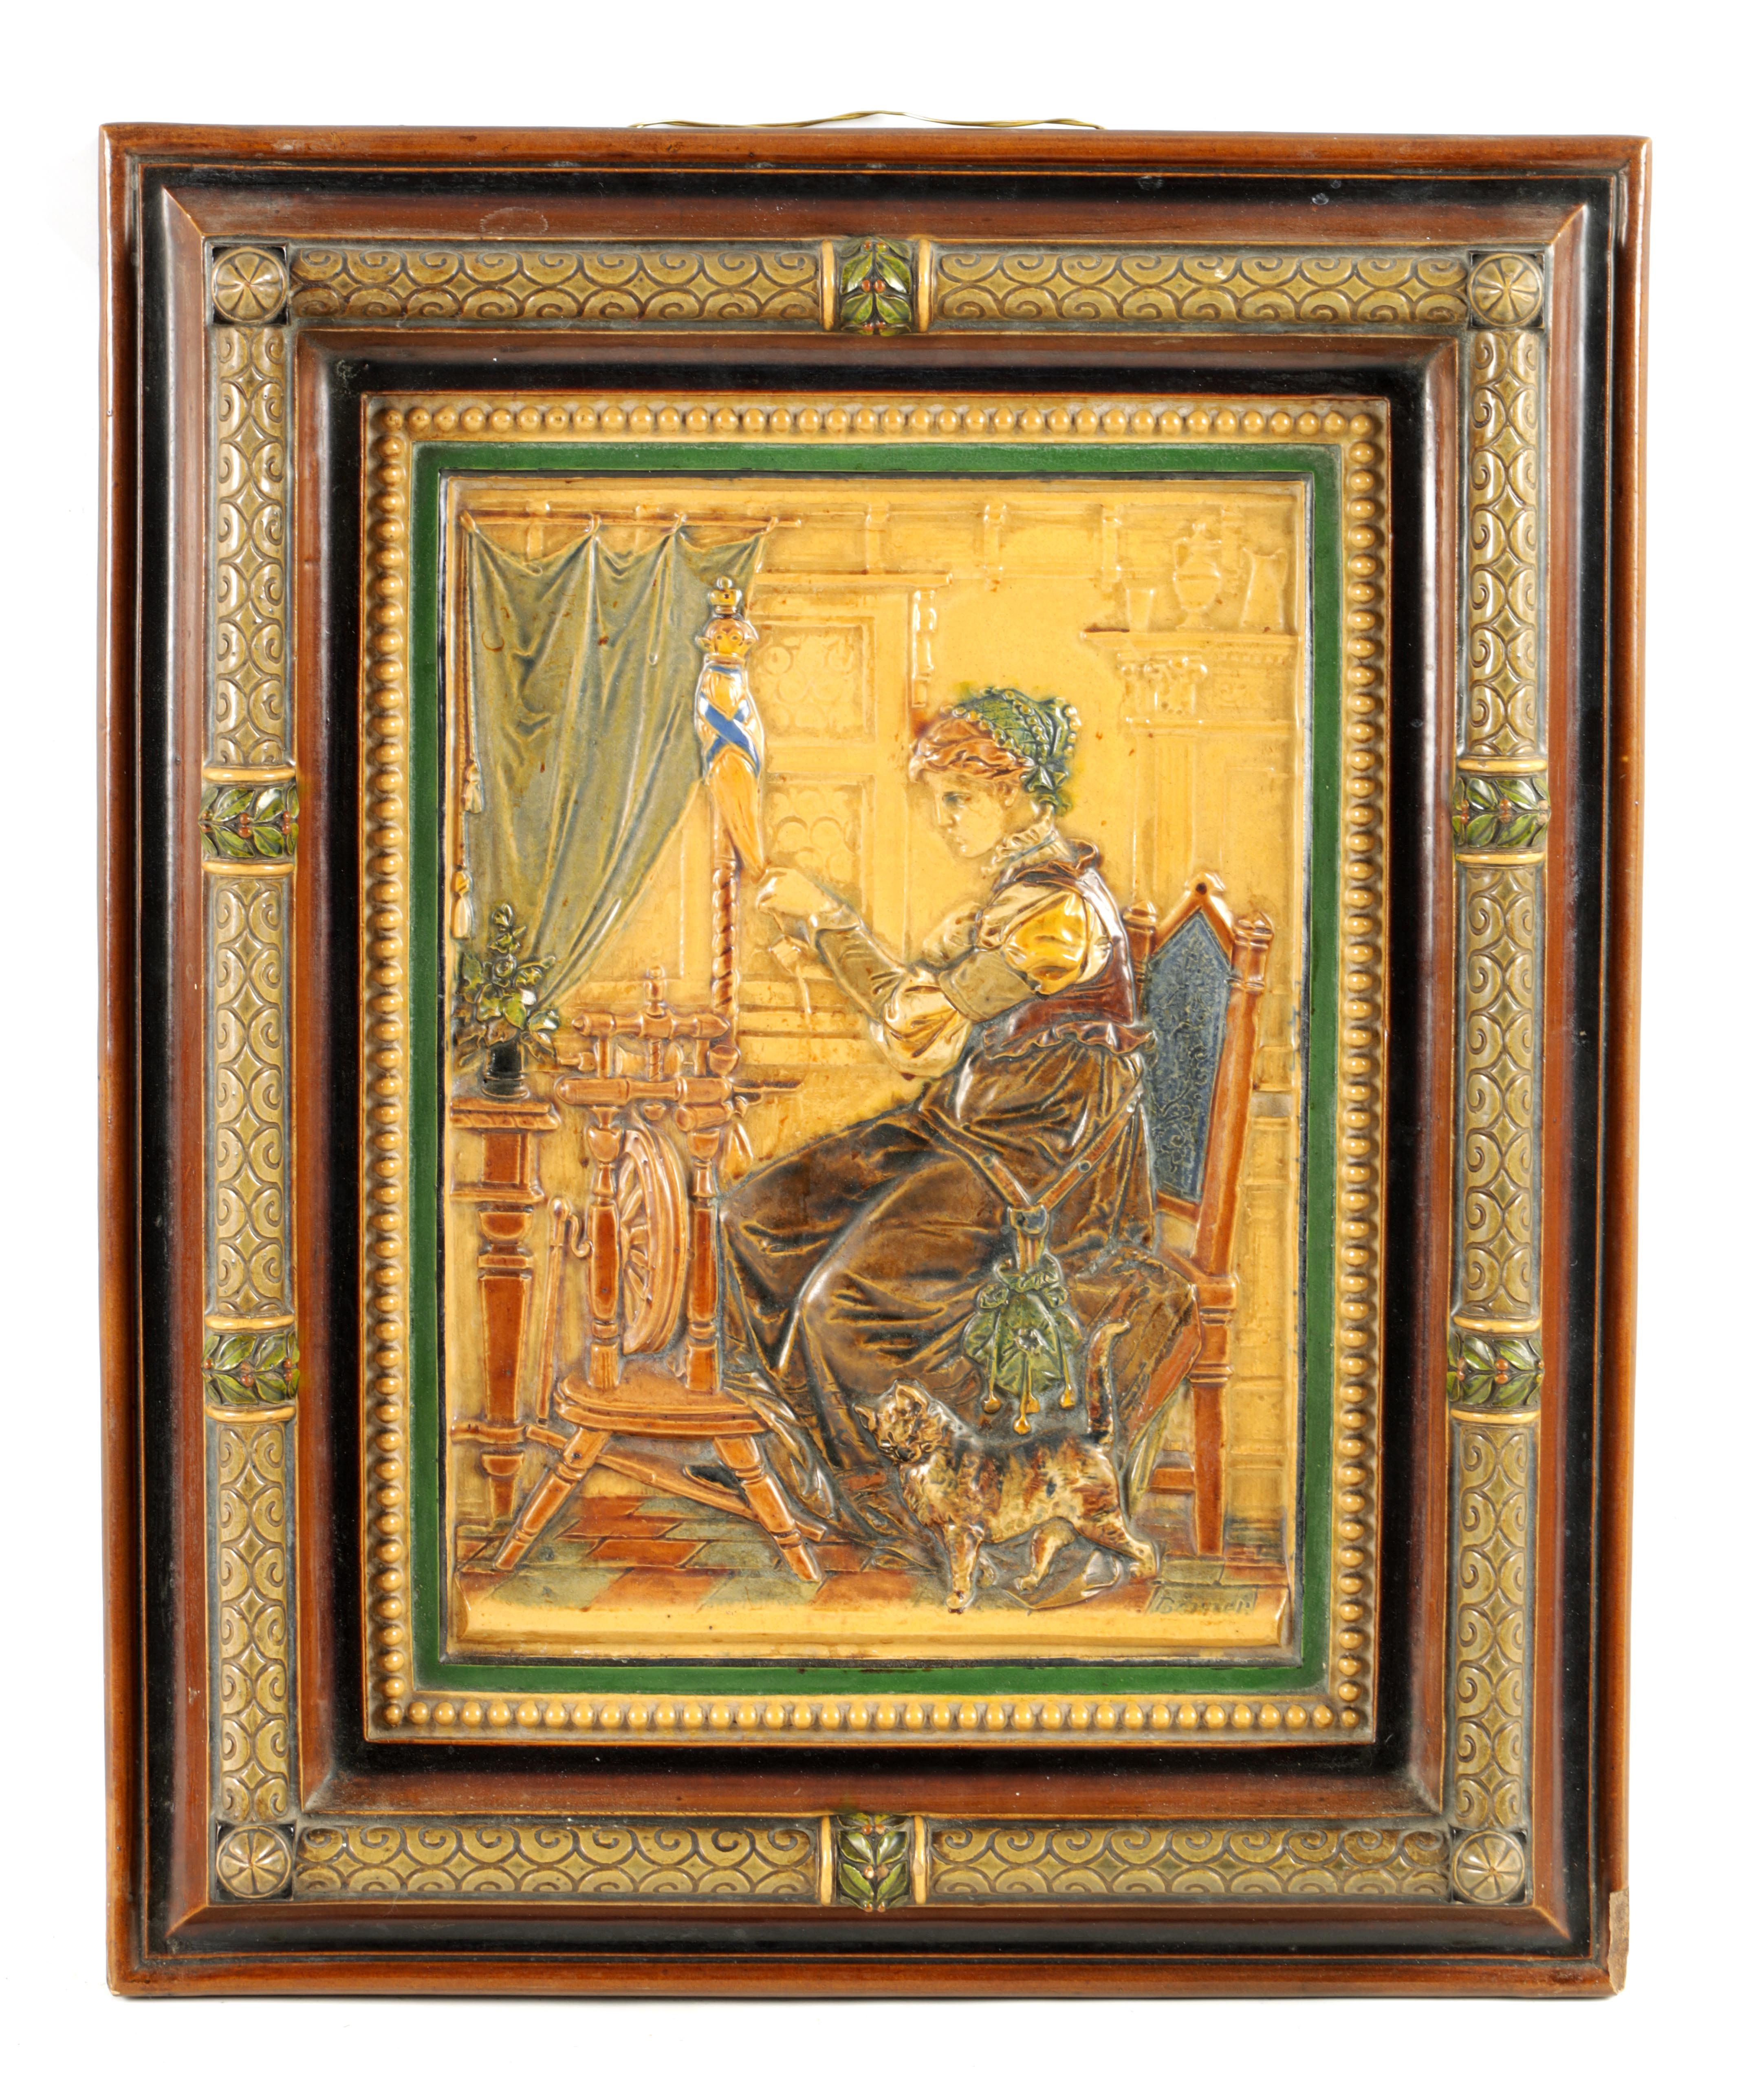 A 19TH CENTURY BORNER & BICHWEILER FIGURAL MAJOLICA HANGING PLAQUE decorated in polychrome colours -